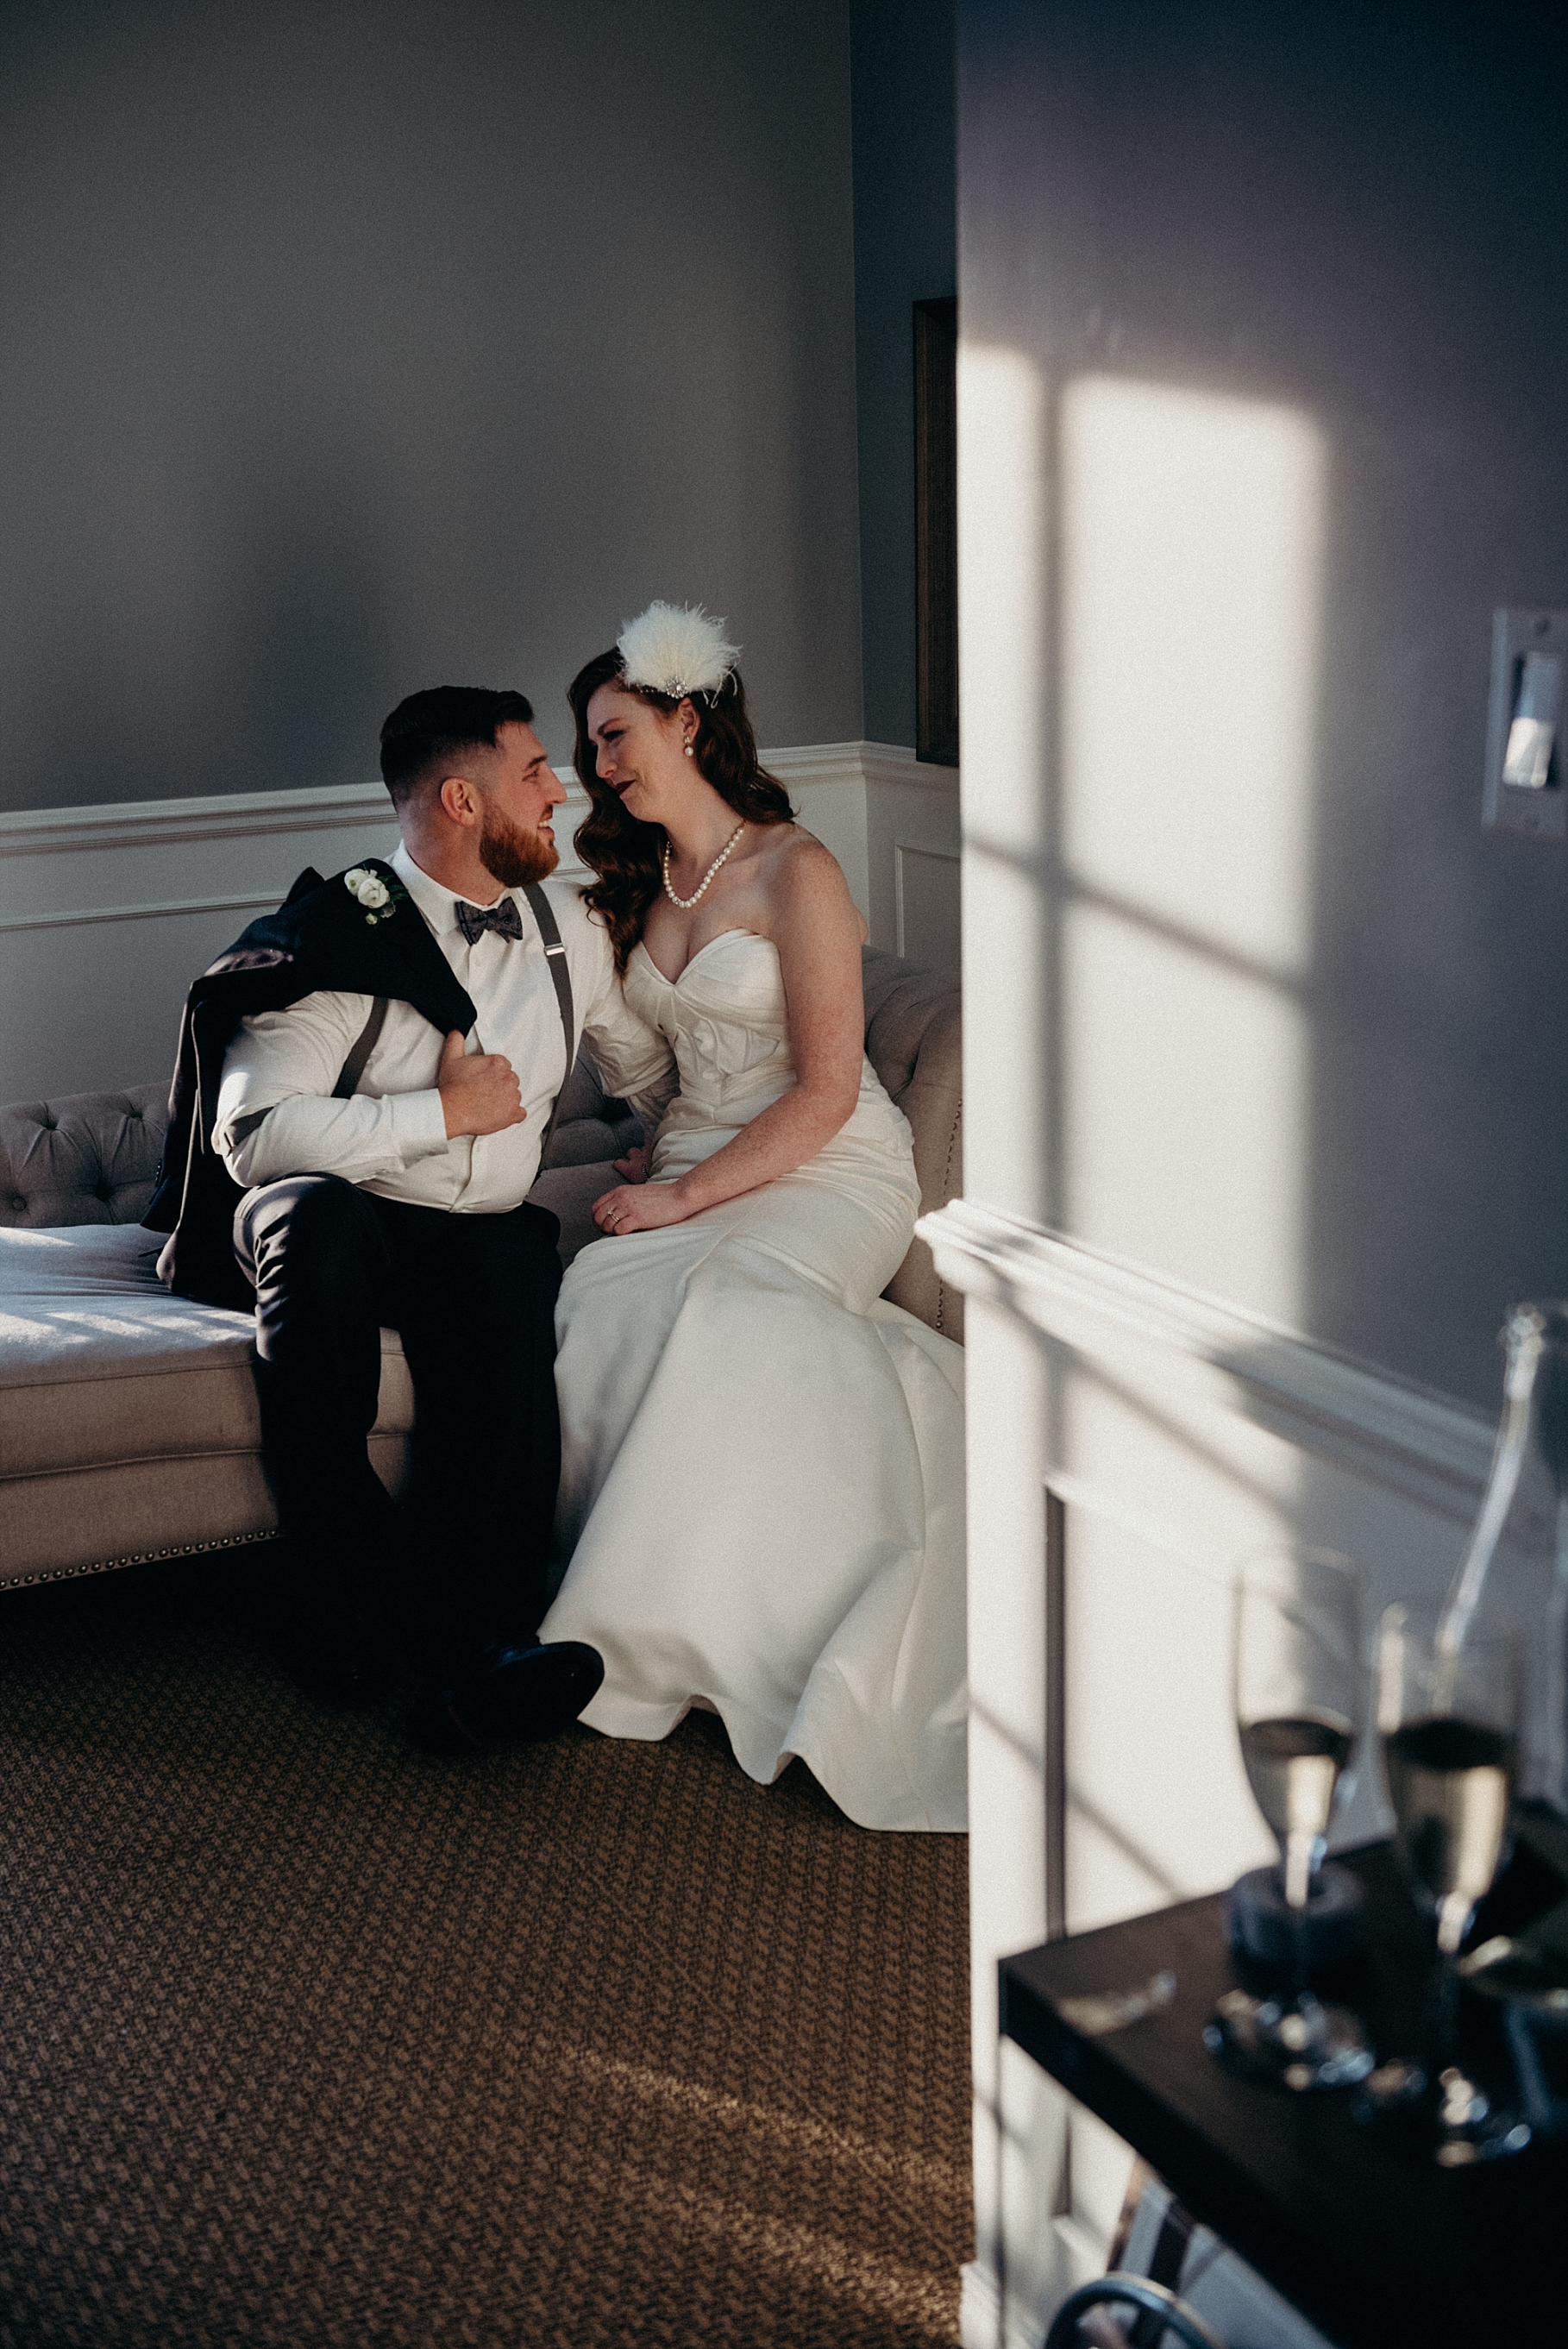 Orchard View Wedding by Mocha Tree Studios Ottawa Wedding and Engagement Photographer and Videographer Dark Moody Intimate Authentic Modern Romantic Cinematic Best Candid 20